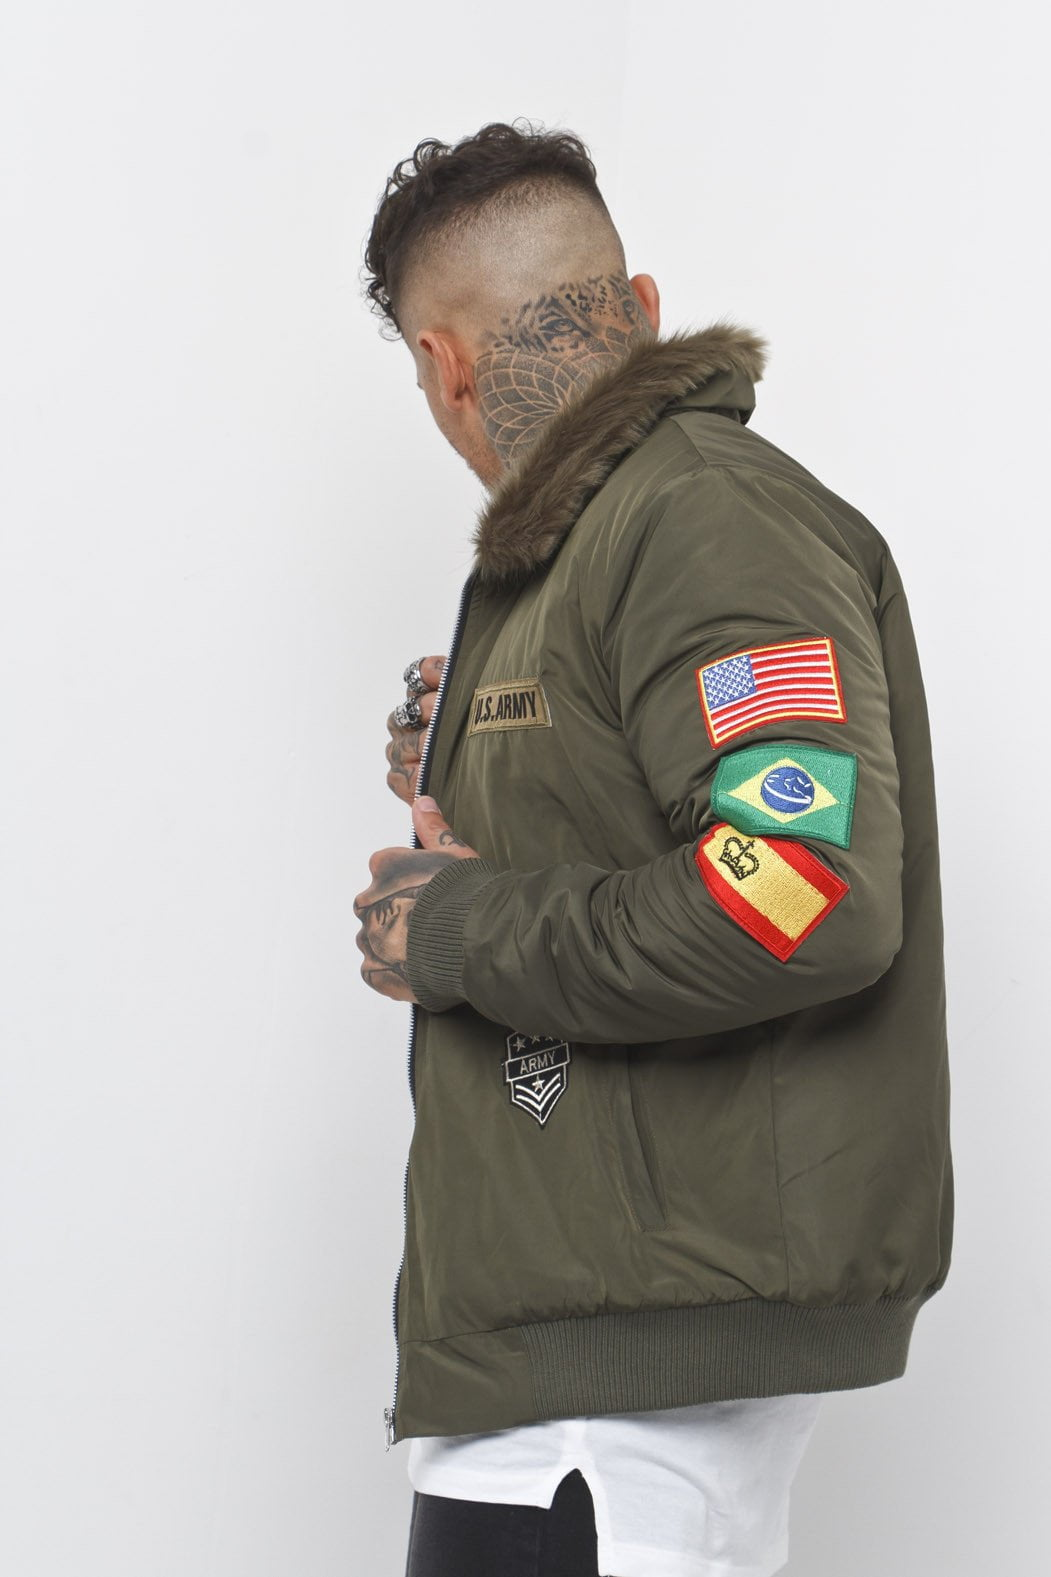 Liquor n Poker - Military Padded bomber jacket with army badges and fur collar - Liquor N Poker  Liquor N Poker